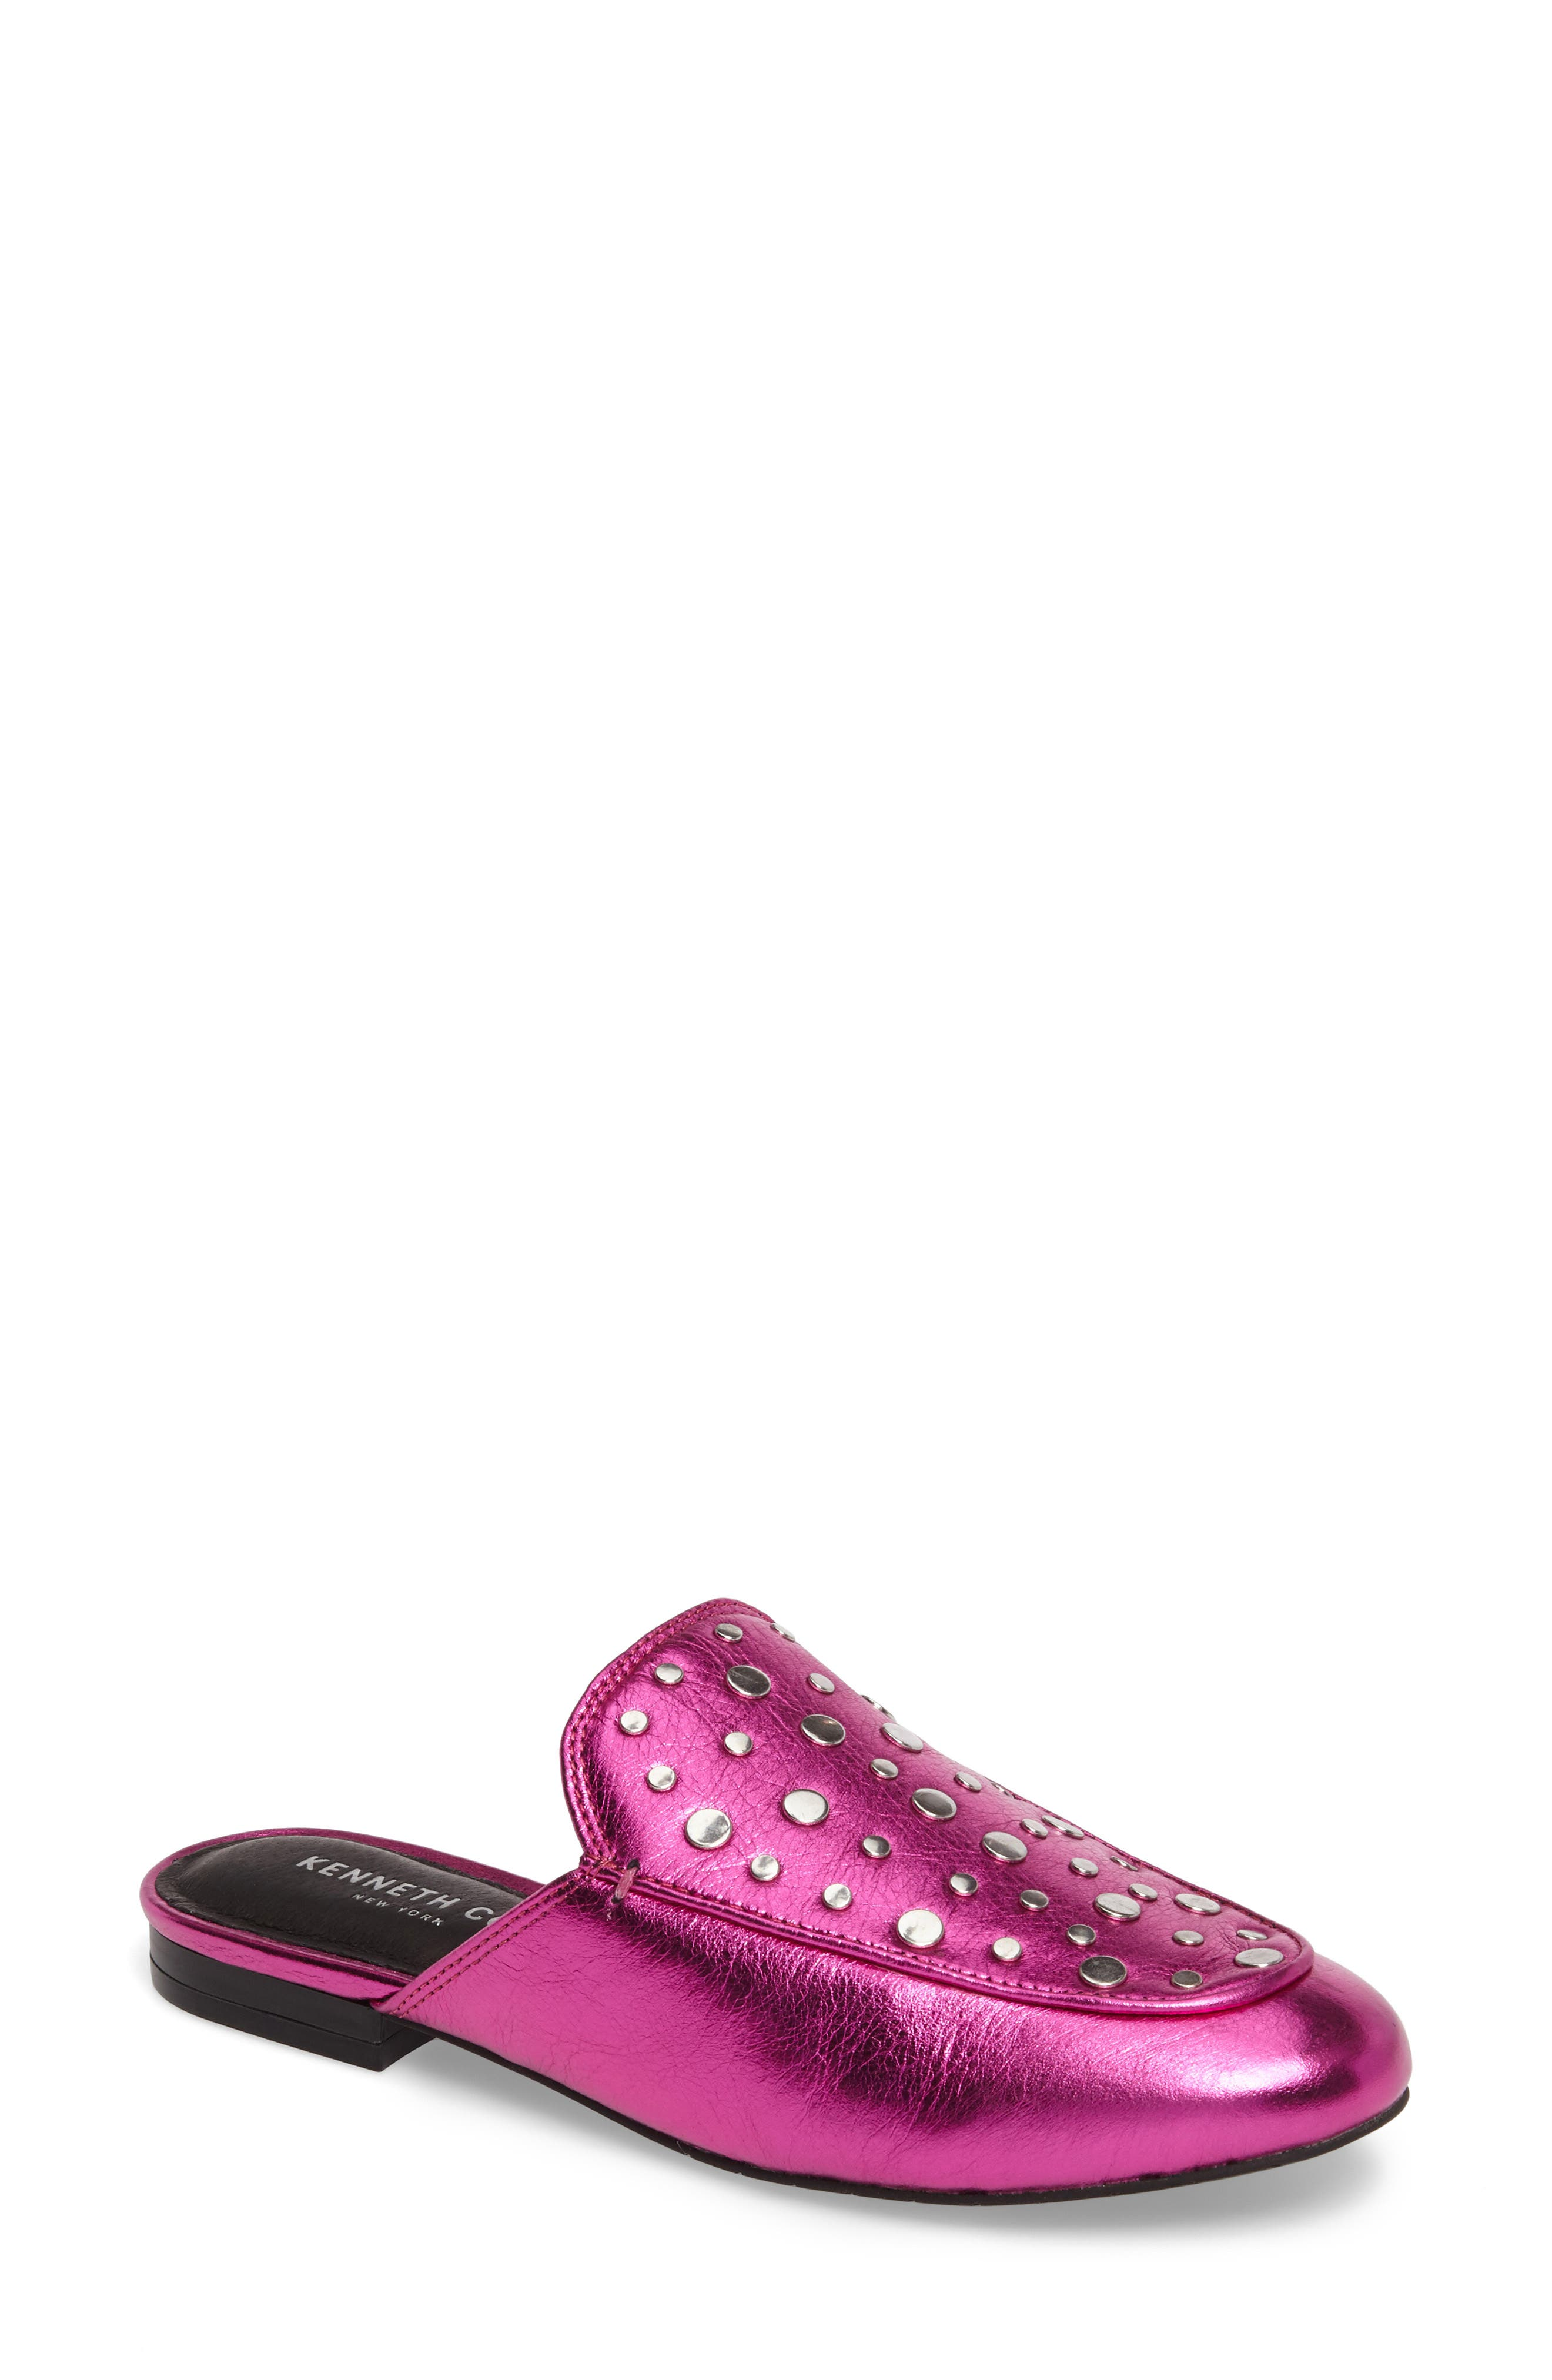 KENNETH COLE NEW YORK Wynter Studded Loafer